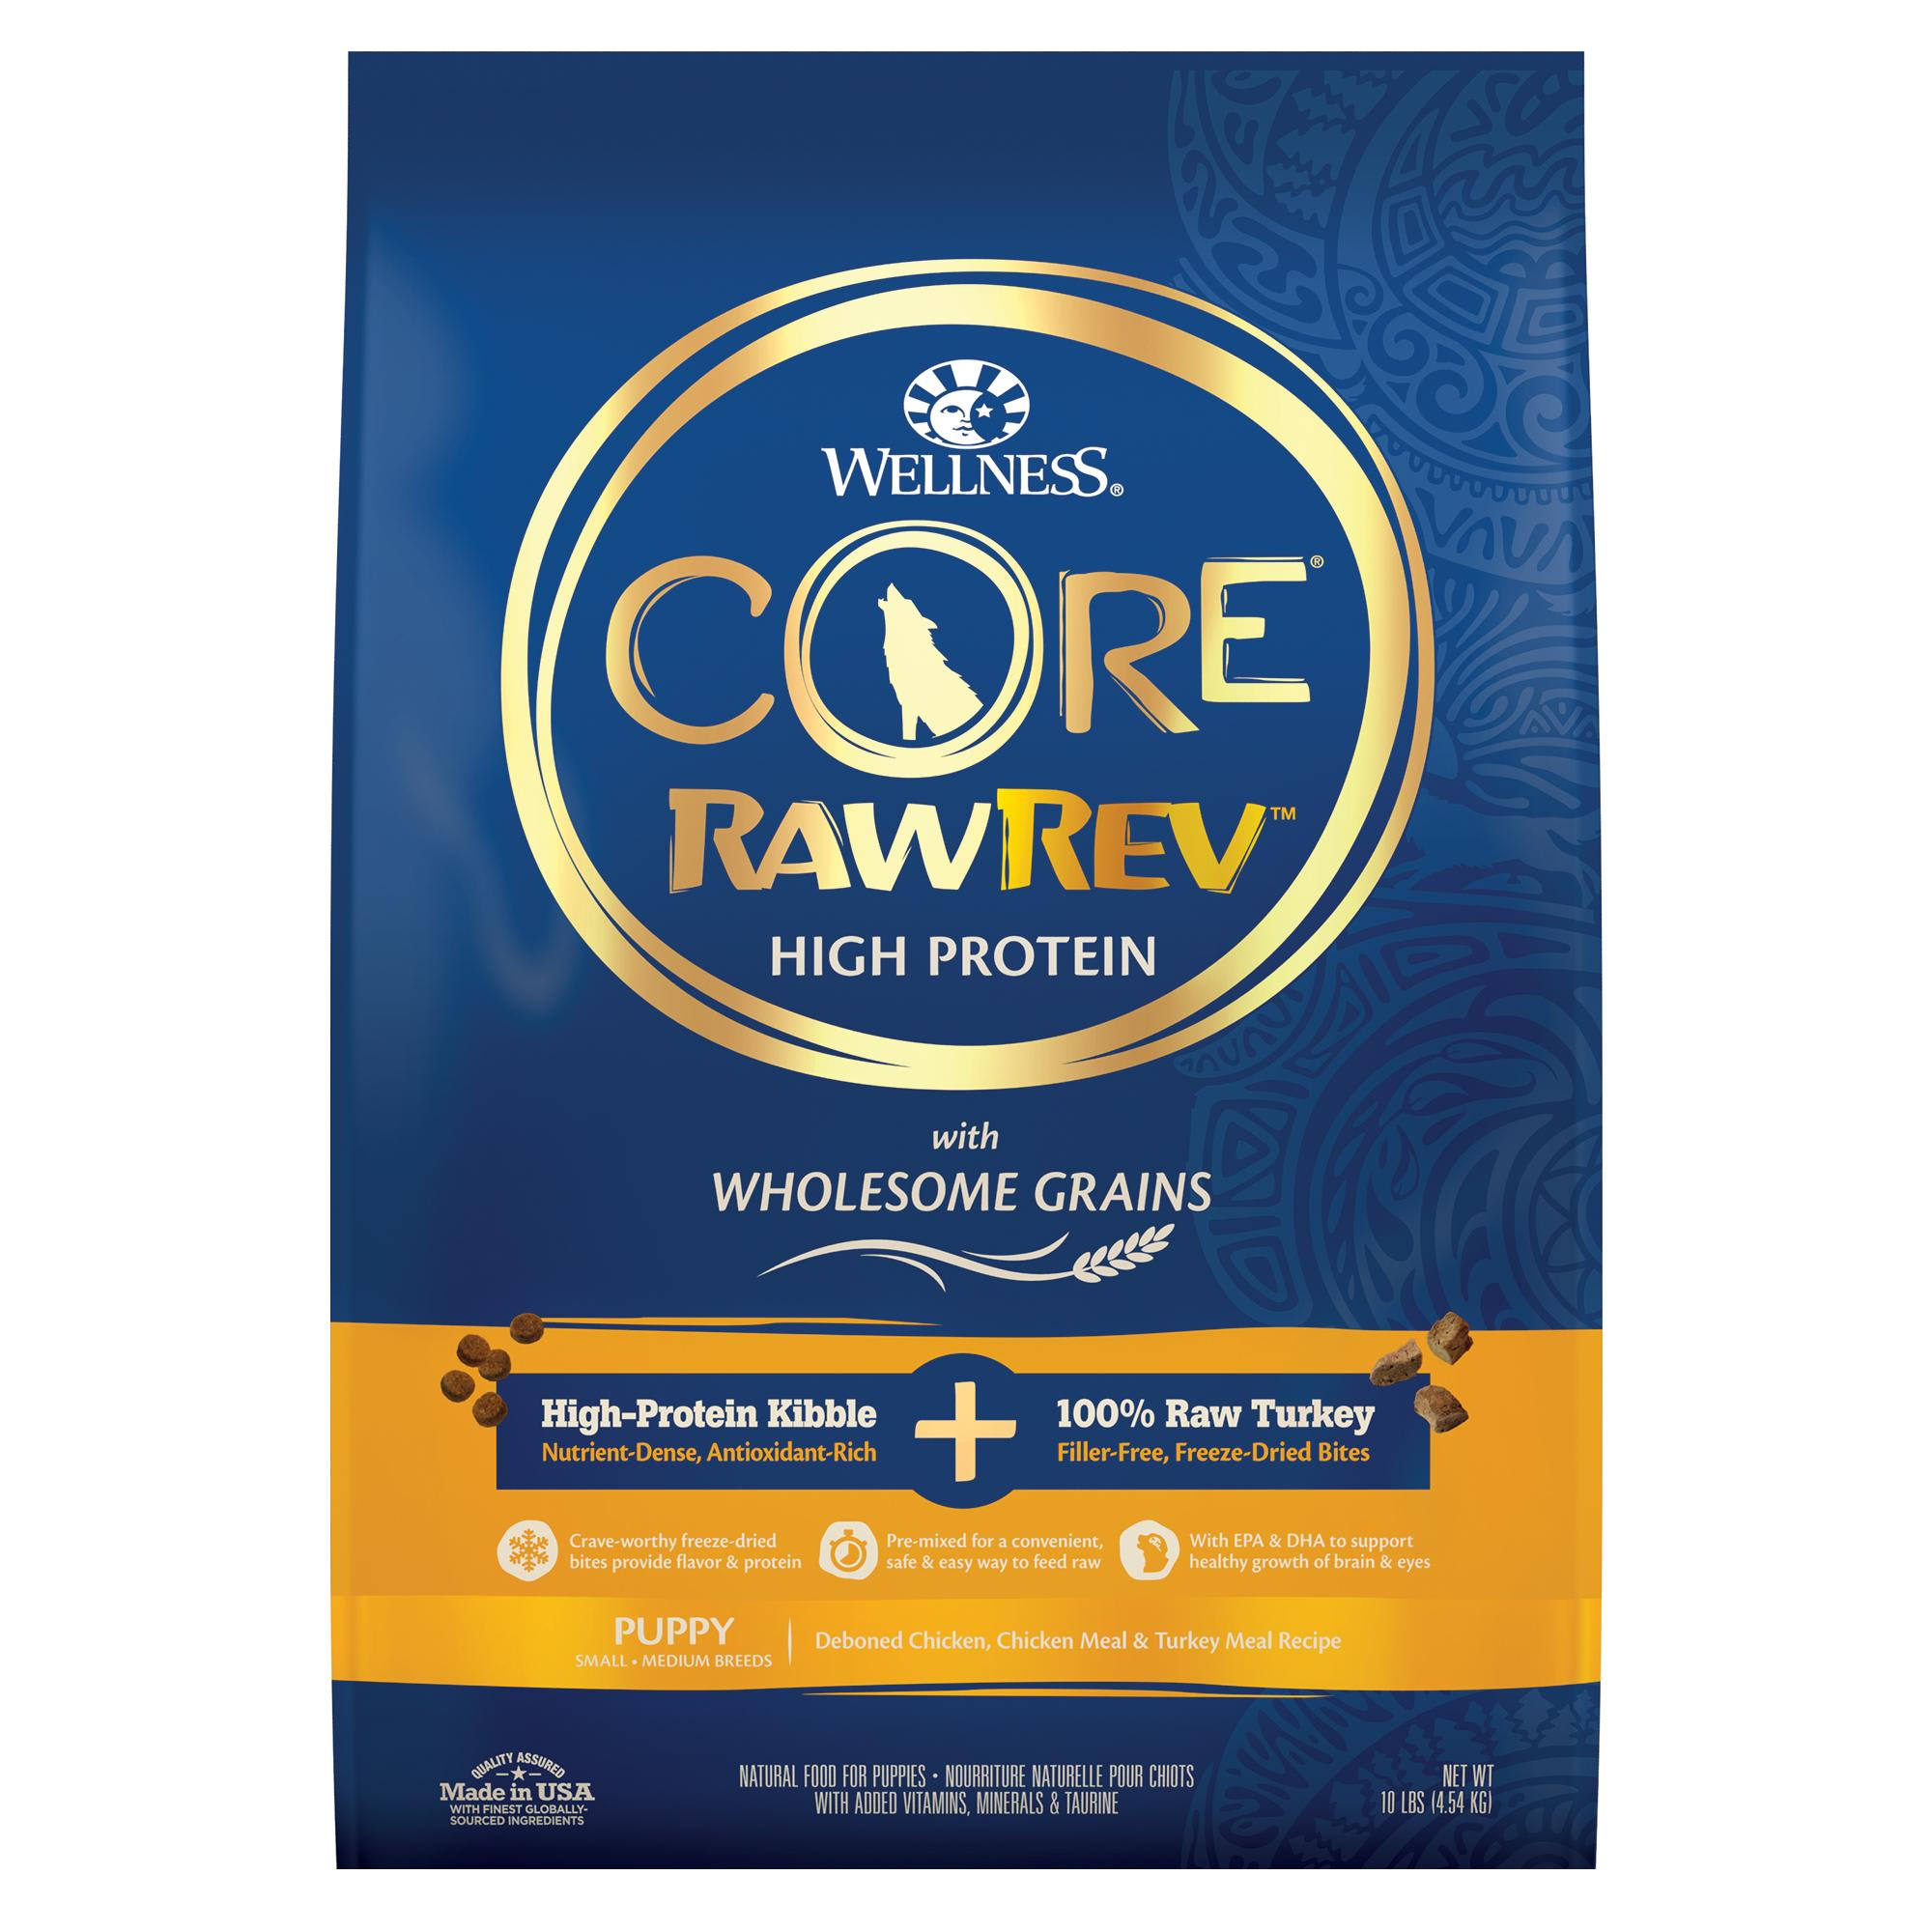 Wellness CORE RawRev Wholesome Grains Chicken Recipe Dry Puppy Food, 10 lbs., Bag